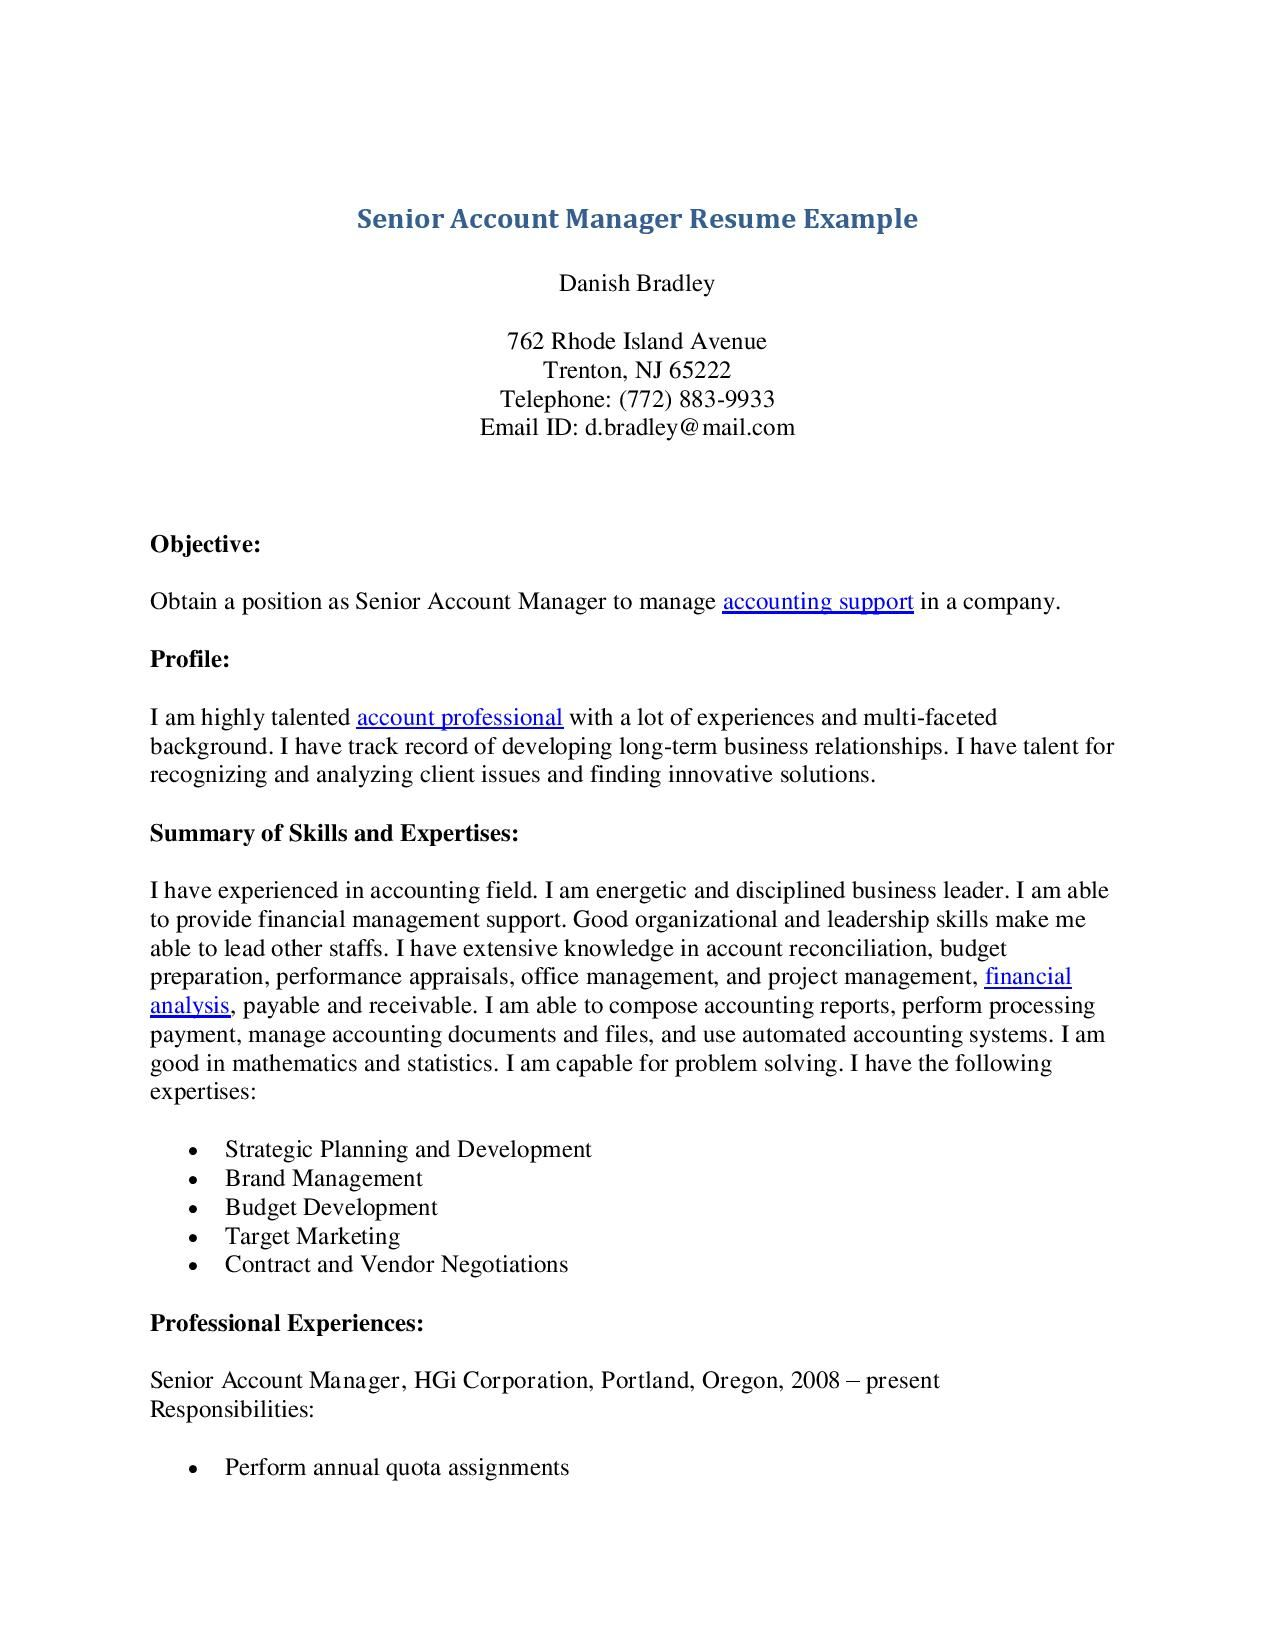 Senior Qa Resume Senior Account Manager Resume Example Senior Account